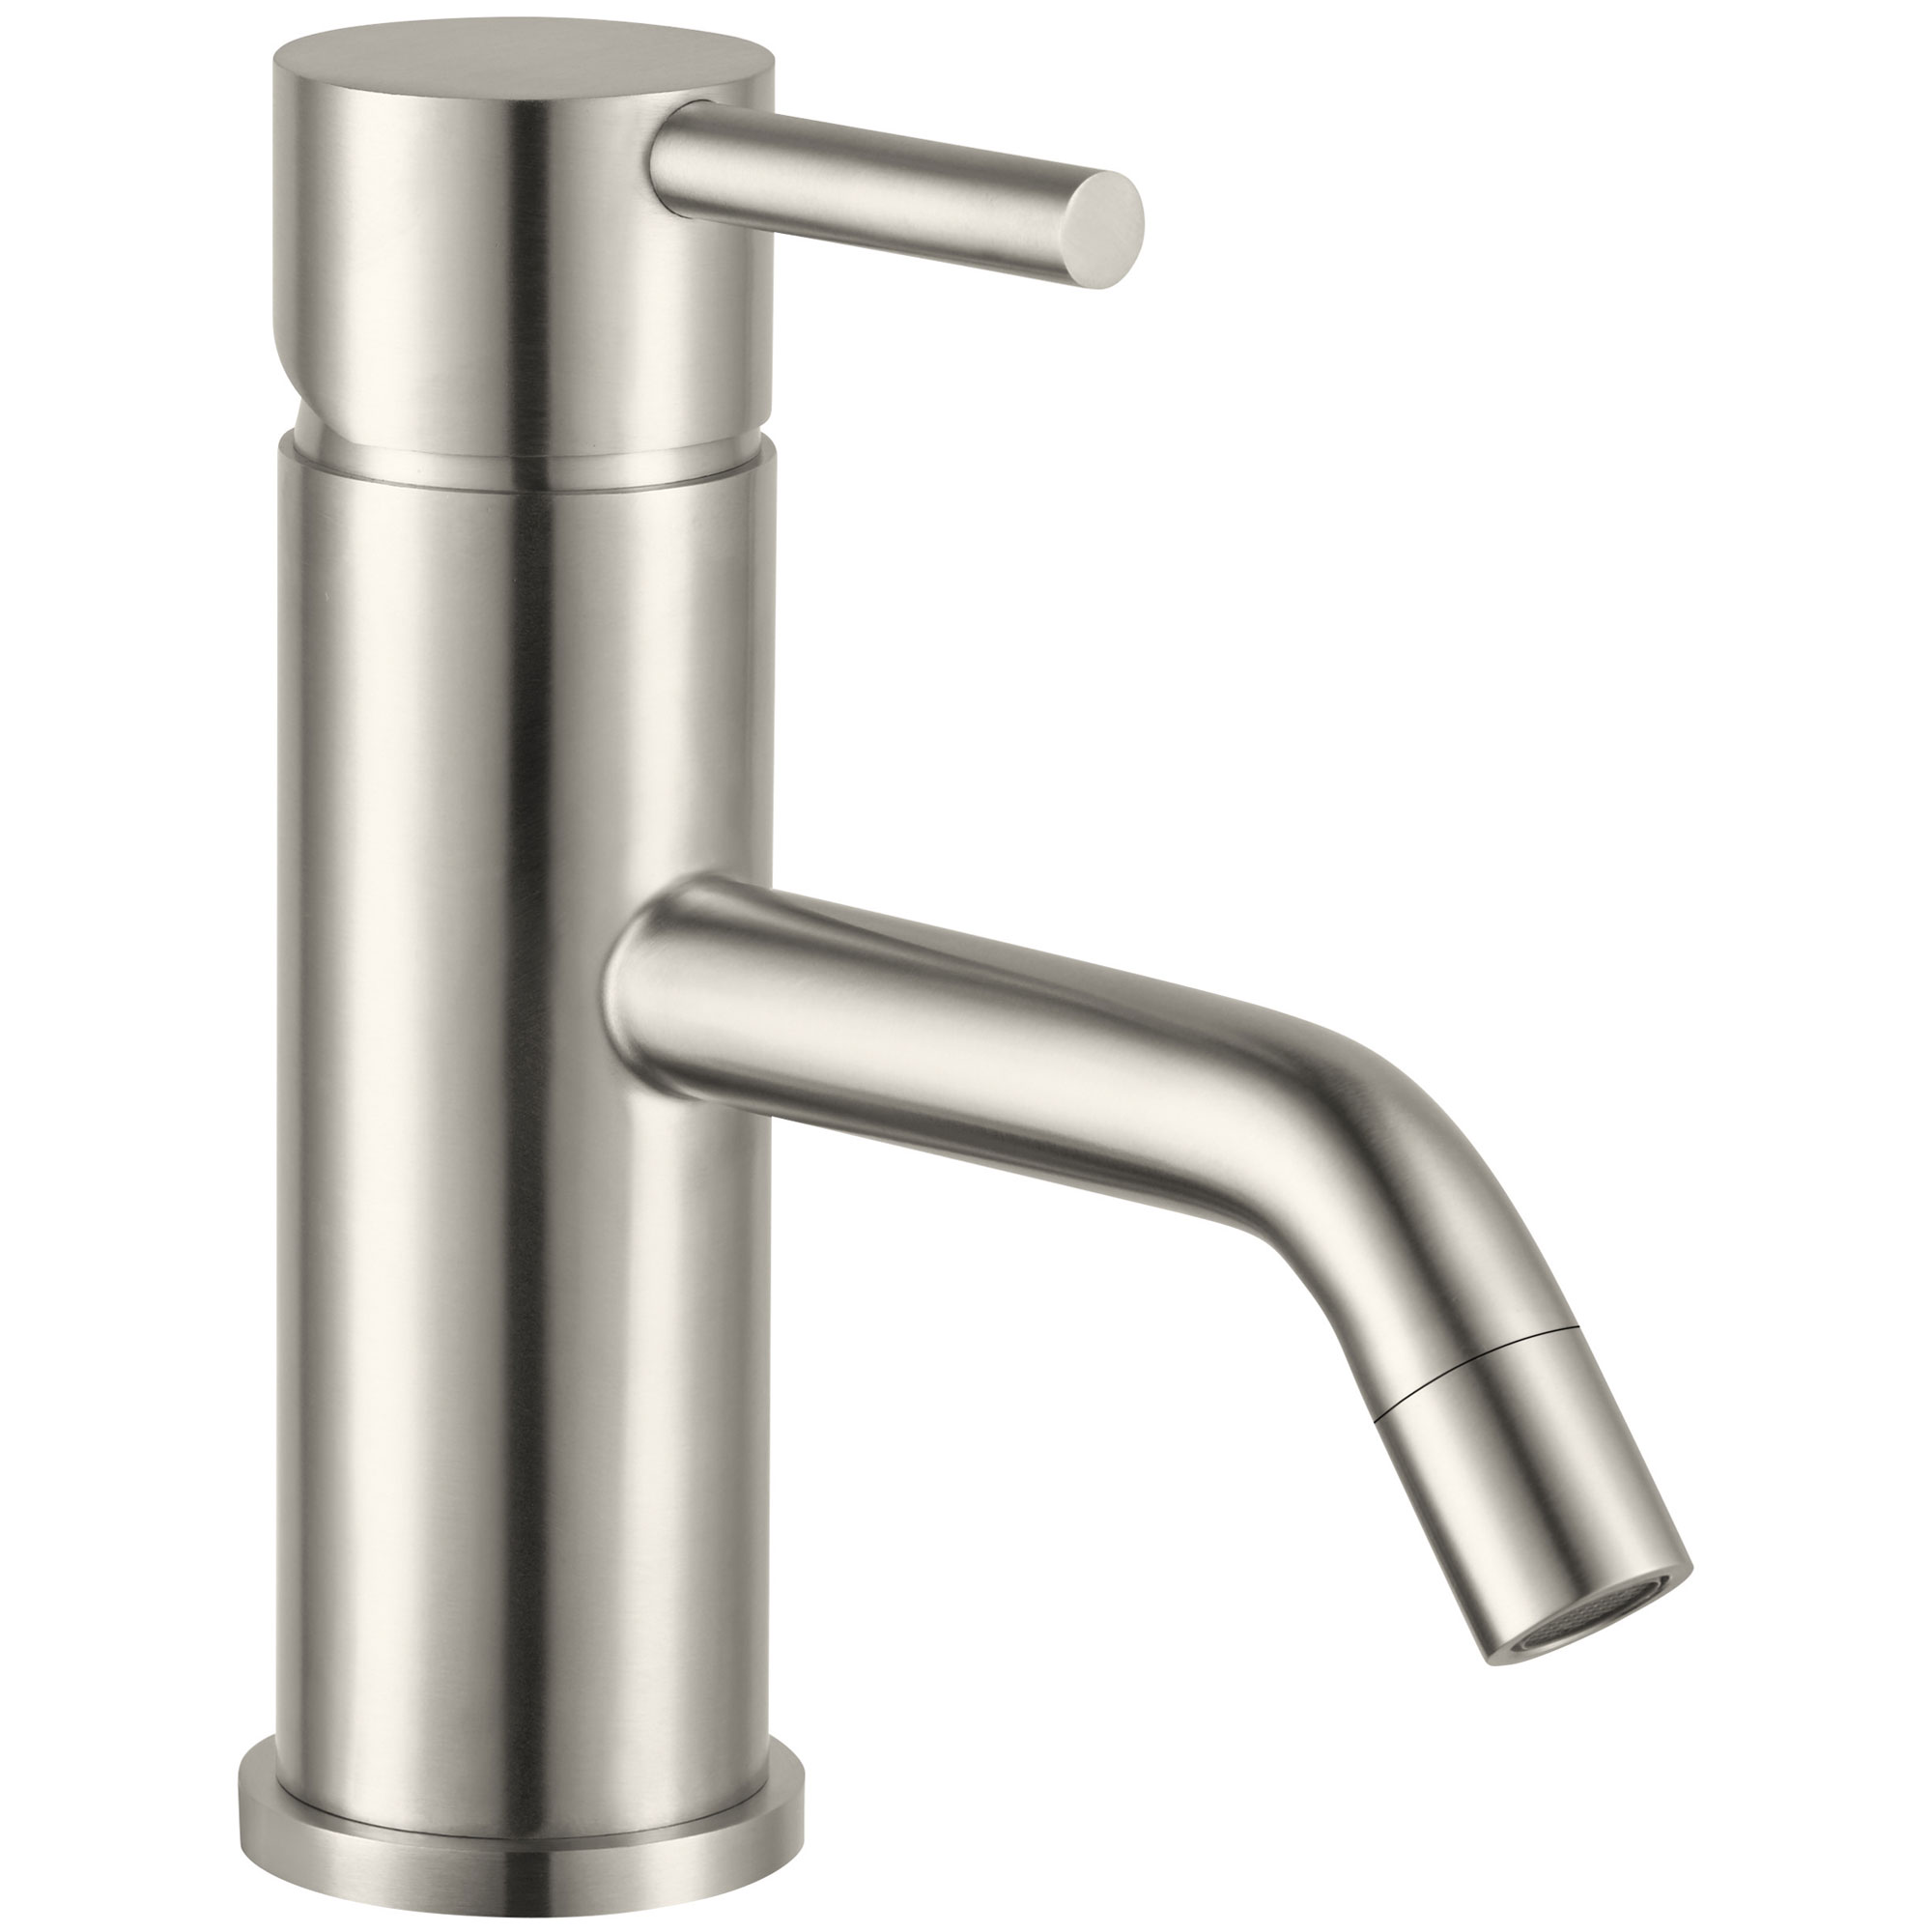 JTP Inox Basin Mixer Tap 110mm Spout Single Handle - Stainless Steel